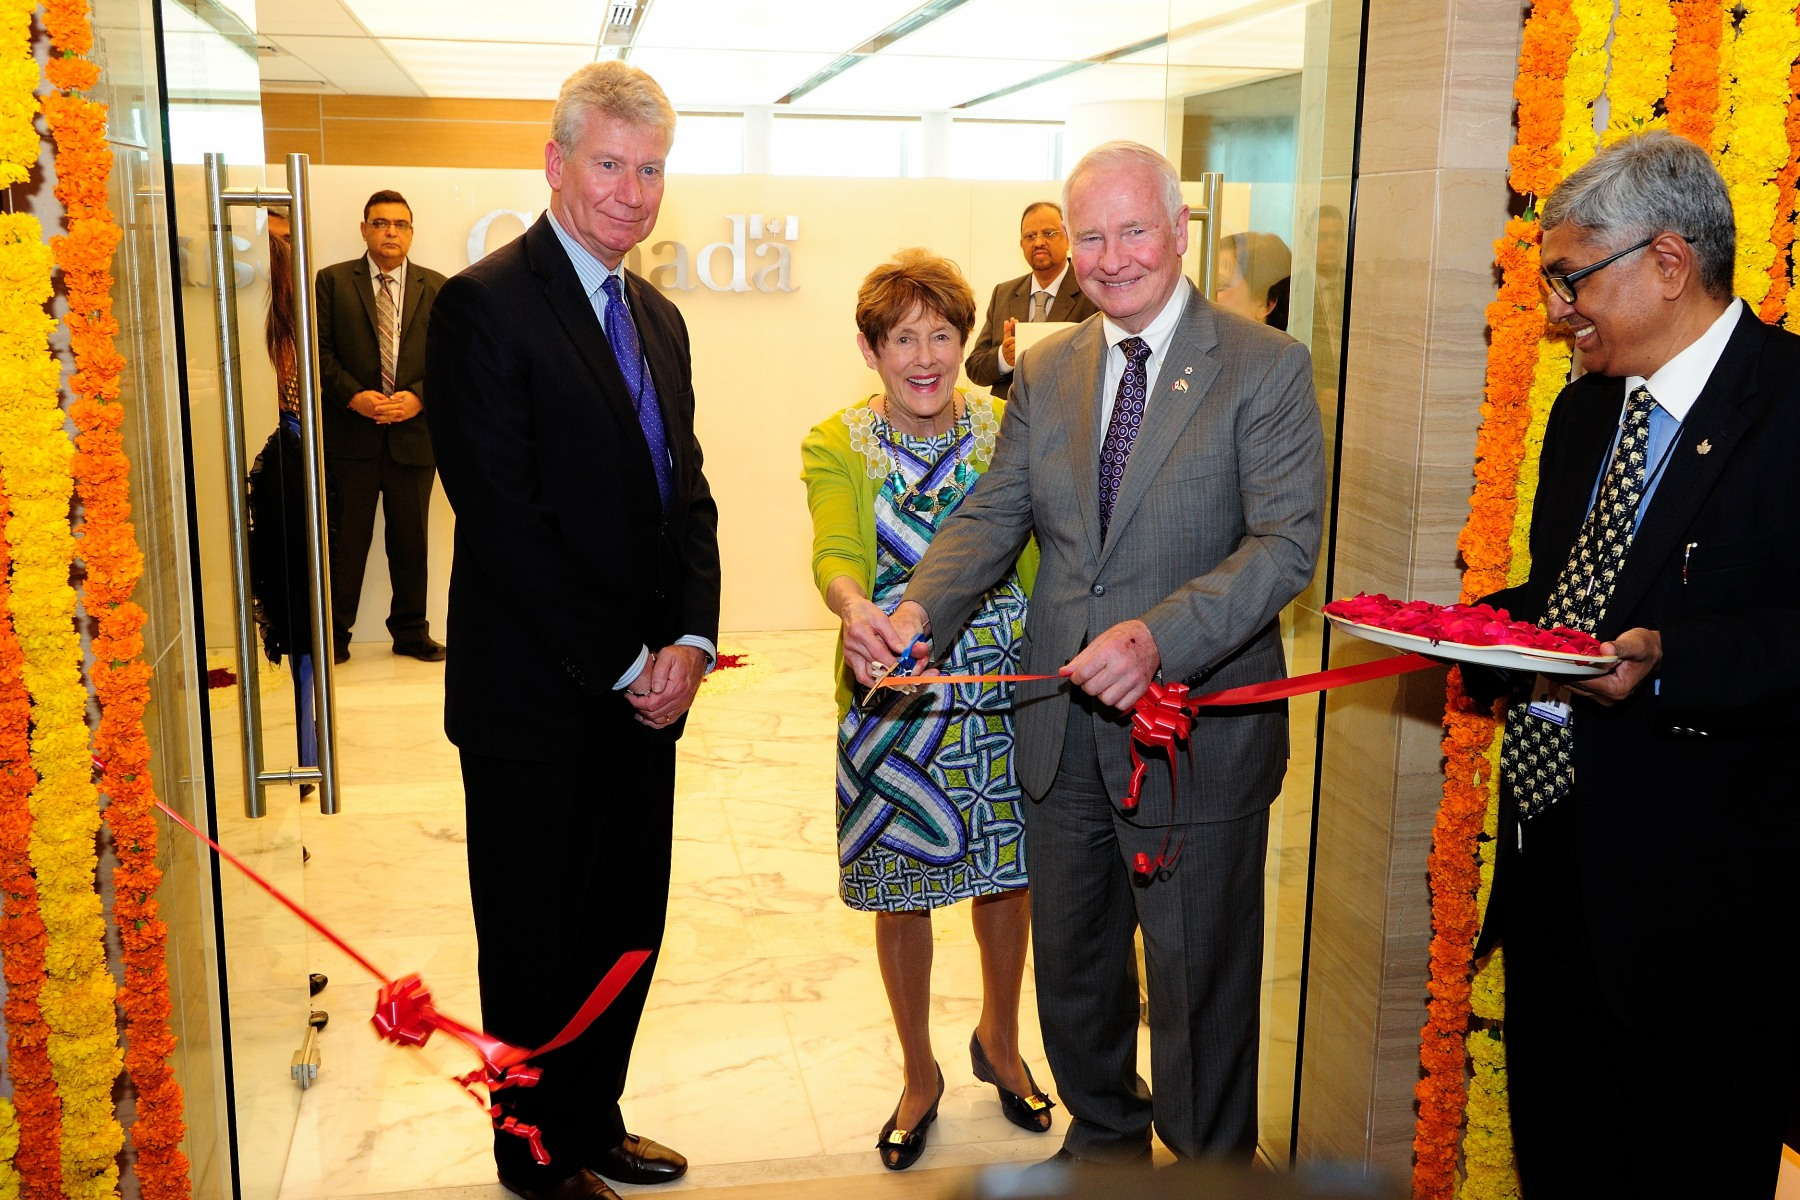 In the presence of Canadian High Commissioner Stewart Beck (left), Their Excellencies also inaugurated the new consulate general of Canada at the World Trade Centre, in Bangalore.